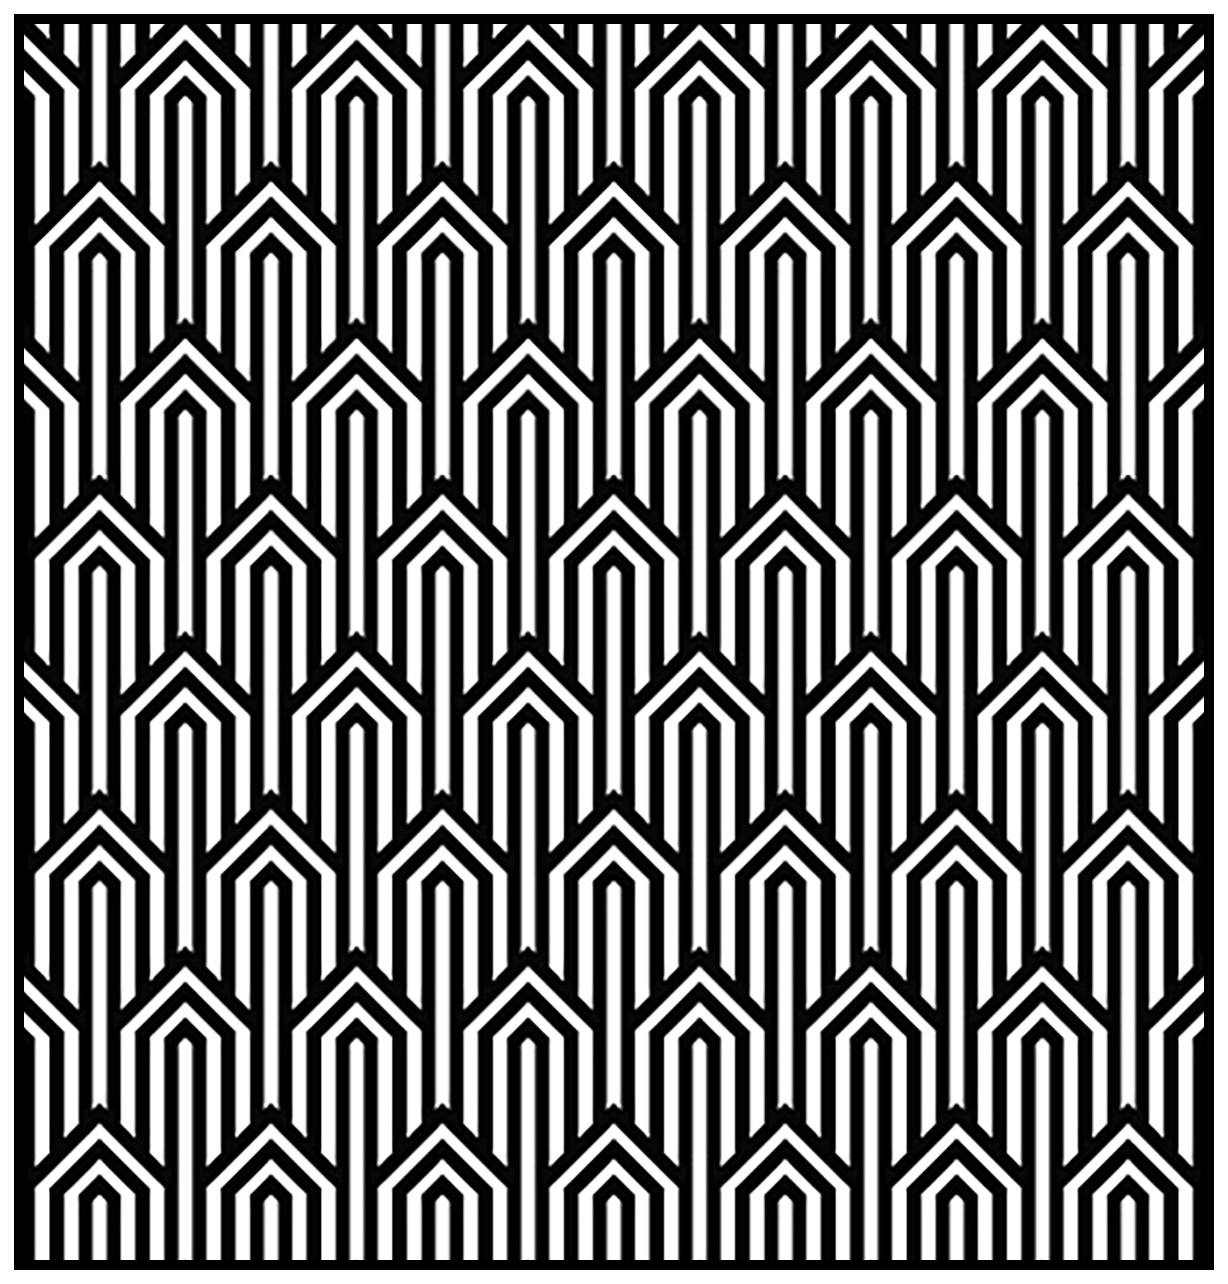 Geometric patterns art deco 1 - Art Deco Adult Coloring Pages